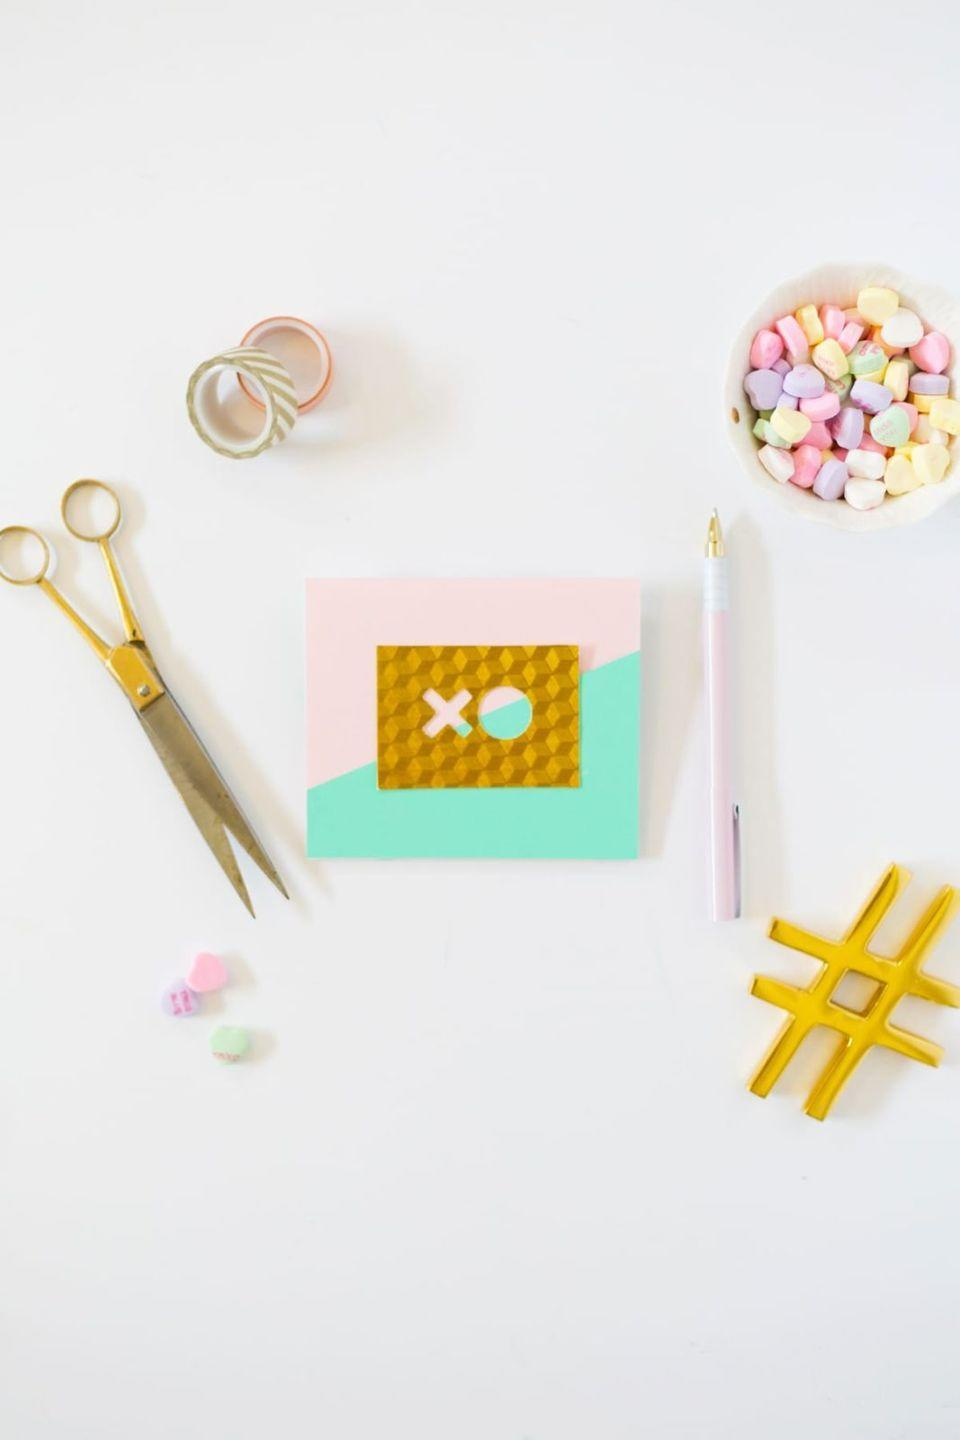 "<p>Tired of the traditional pink and red heart Valentine's Day Cards? For a fresh, modern take on Valentines, try these XO pop-up cards featuring a lovely gold, mint green, and blush pink color palette.</p><p><strong>See more at <a href=""https://lovelyindeed.com/diy-modern-valentine-pop-cards/"" rel=""nofollow noopener"" target=""_blank"" data-ylk=""slk:Lovely Indeed"" class=""link rapid-noclick-resp"">Lovely Indeed</a>. </strong></p><p><a class=""link rapid-noclick-resp"" href=""https://go.redirectingat.com?id=74968X1596630&url=https%3A%2F%2Fwww.walmart.com%2Fip%2FColorbok-12-Smooth-Cardstock-Pastel-Pad%2F36969951&sref=https%3A%2F%2Fwww.thepioneerwoman.com%2Fhome-lifestyle%2Fcrafts-diy%2Fg35084525%2Fdiy-valentines-day-cards%2F"" rel=""nofollow noopener"" target=""_blank"" data-ylk=""slk:SHOP PASTEL CARD STOCK"">SHOP PASTEL CARD STOCK</a></p>"